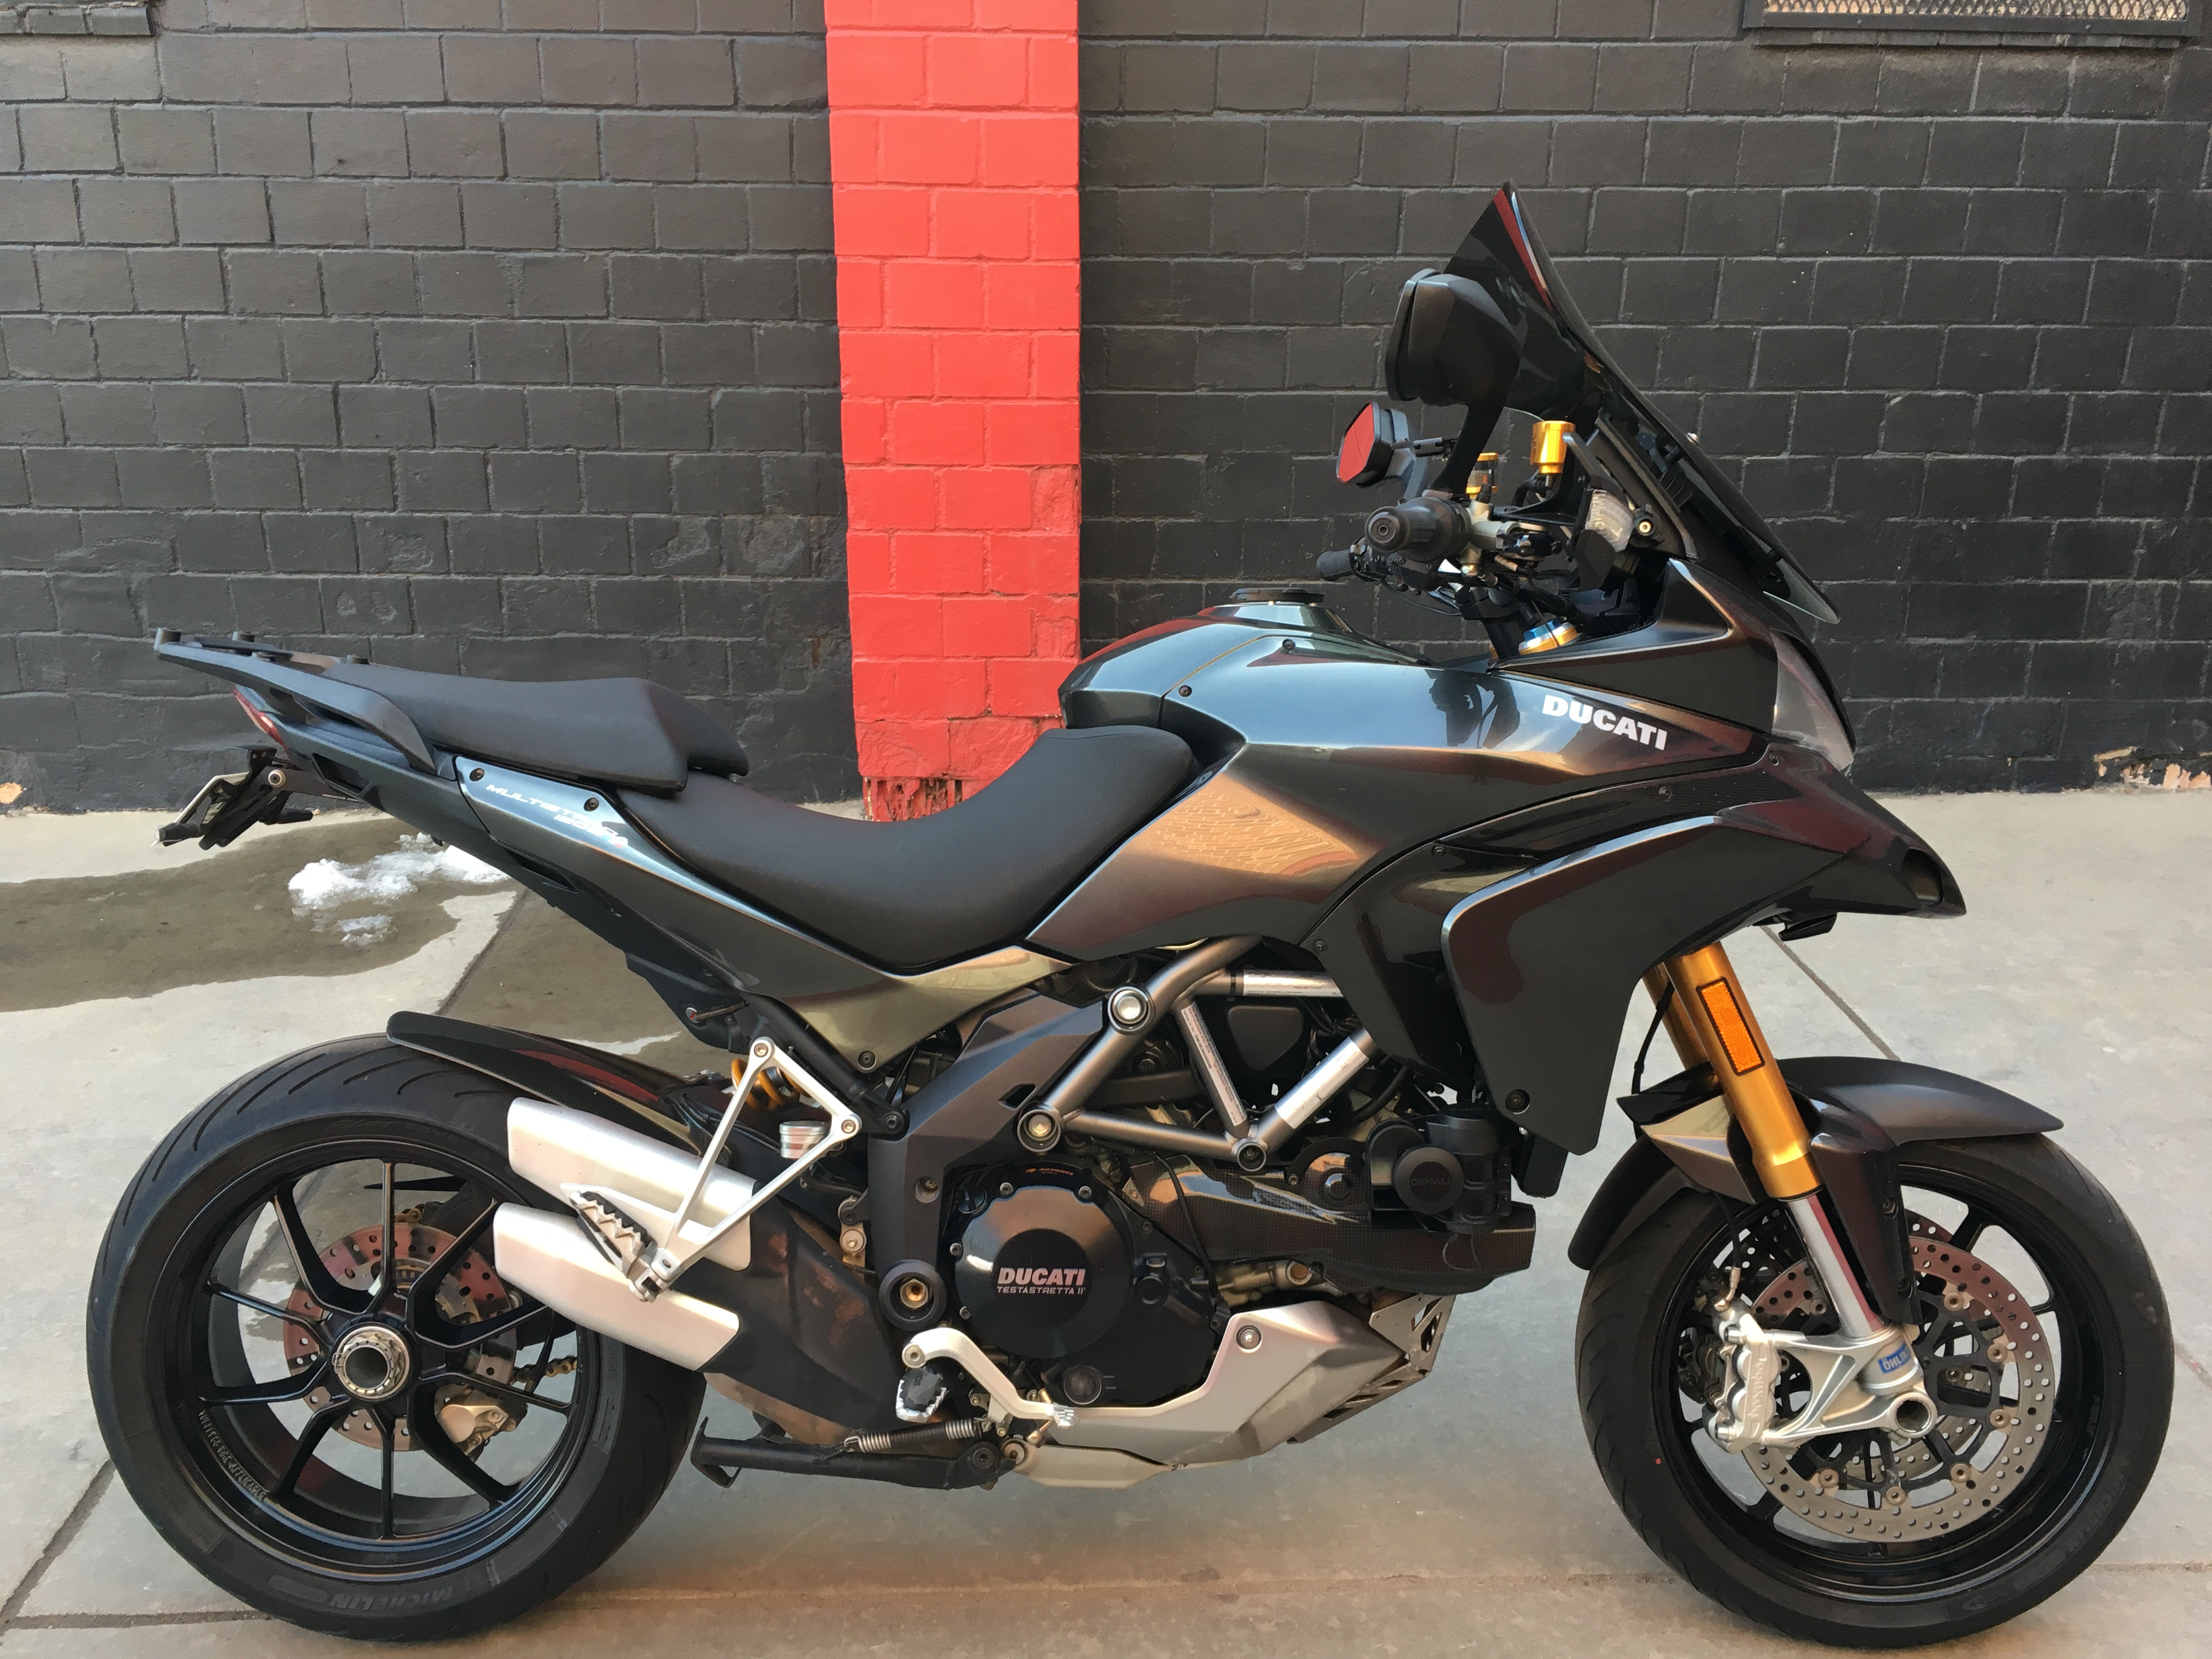 Pre-Owned 2010 DUCATI MTS 1200 S